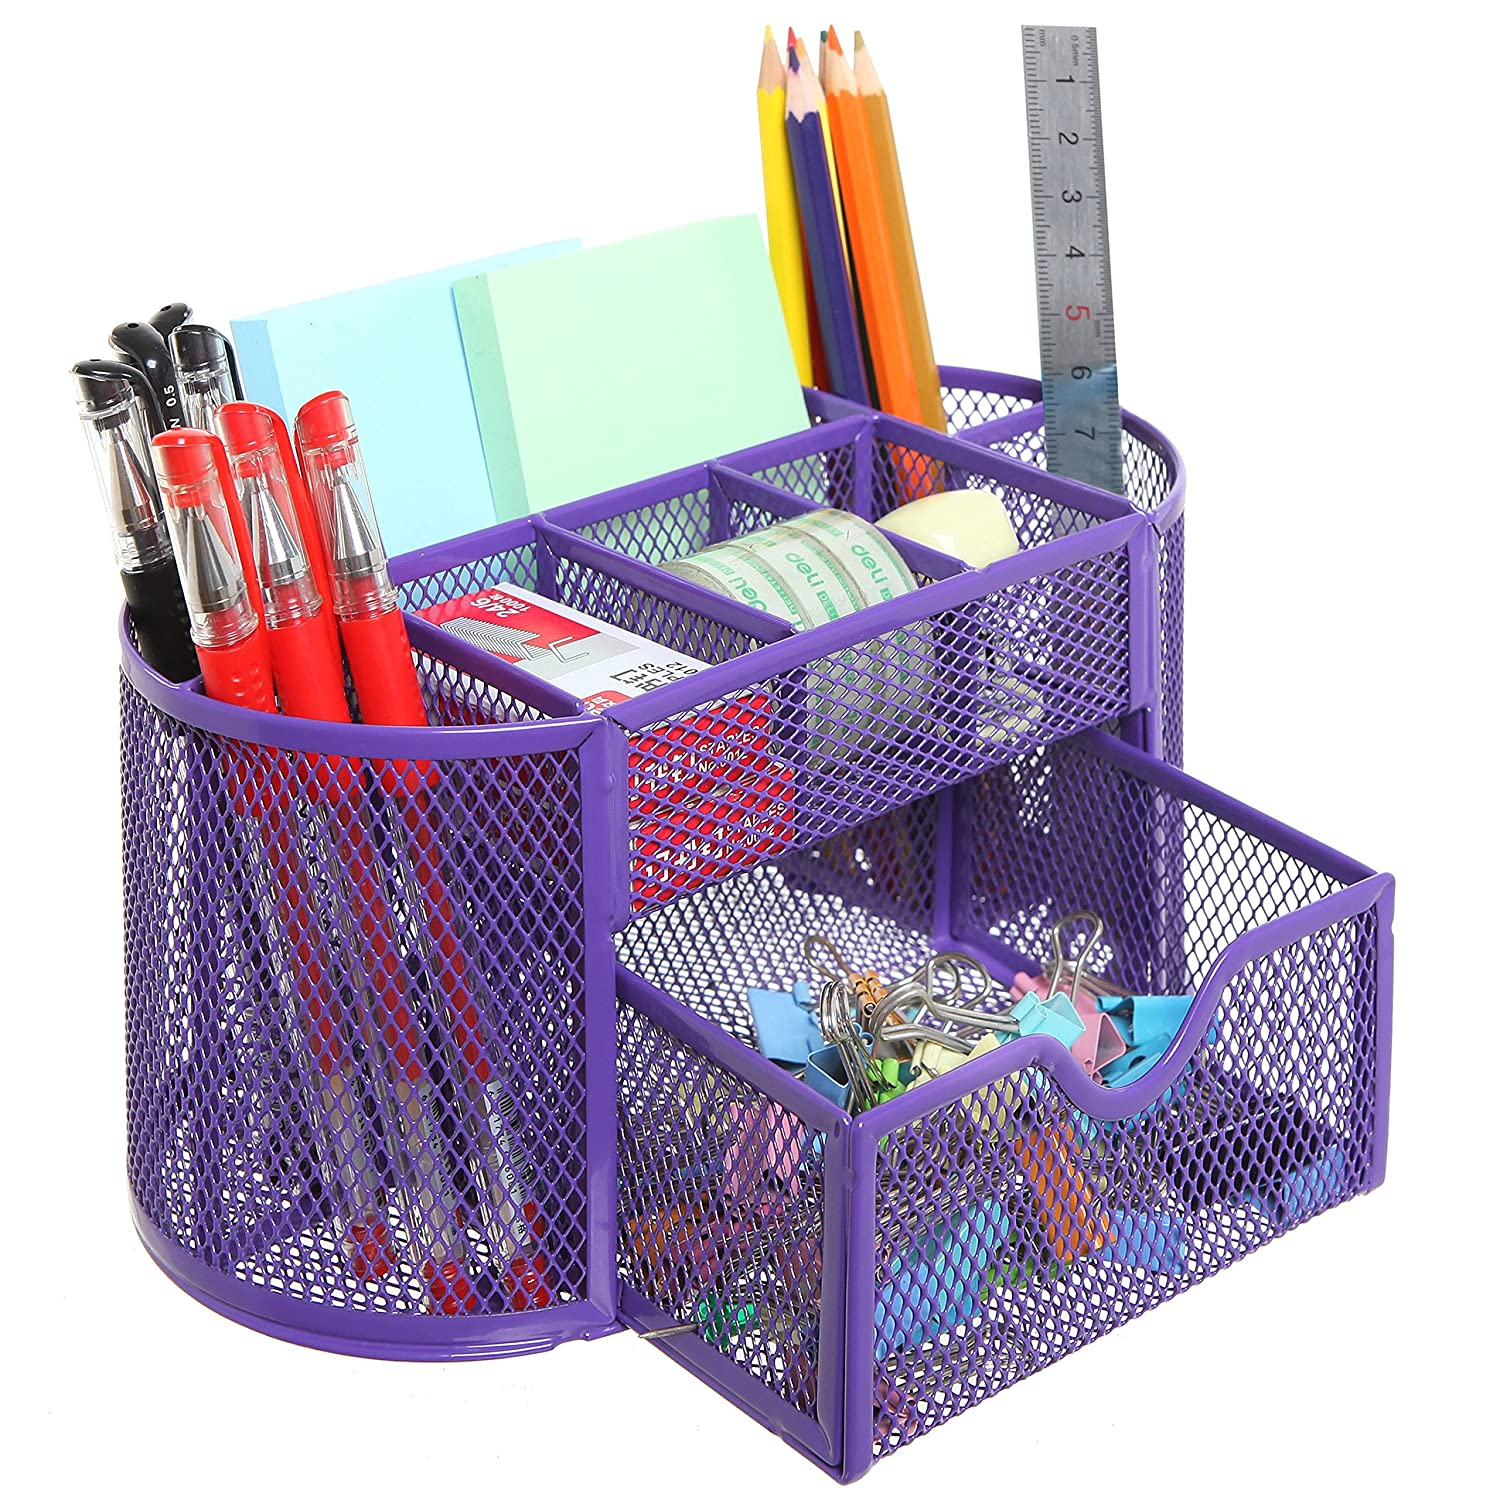 MyGift Space Saving Purple Metal Wire 8 Compartment Office/School Supply Desktop Organizer Caddy w/Drawer